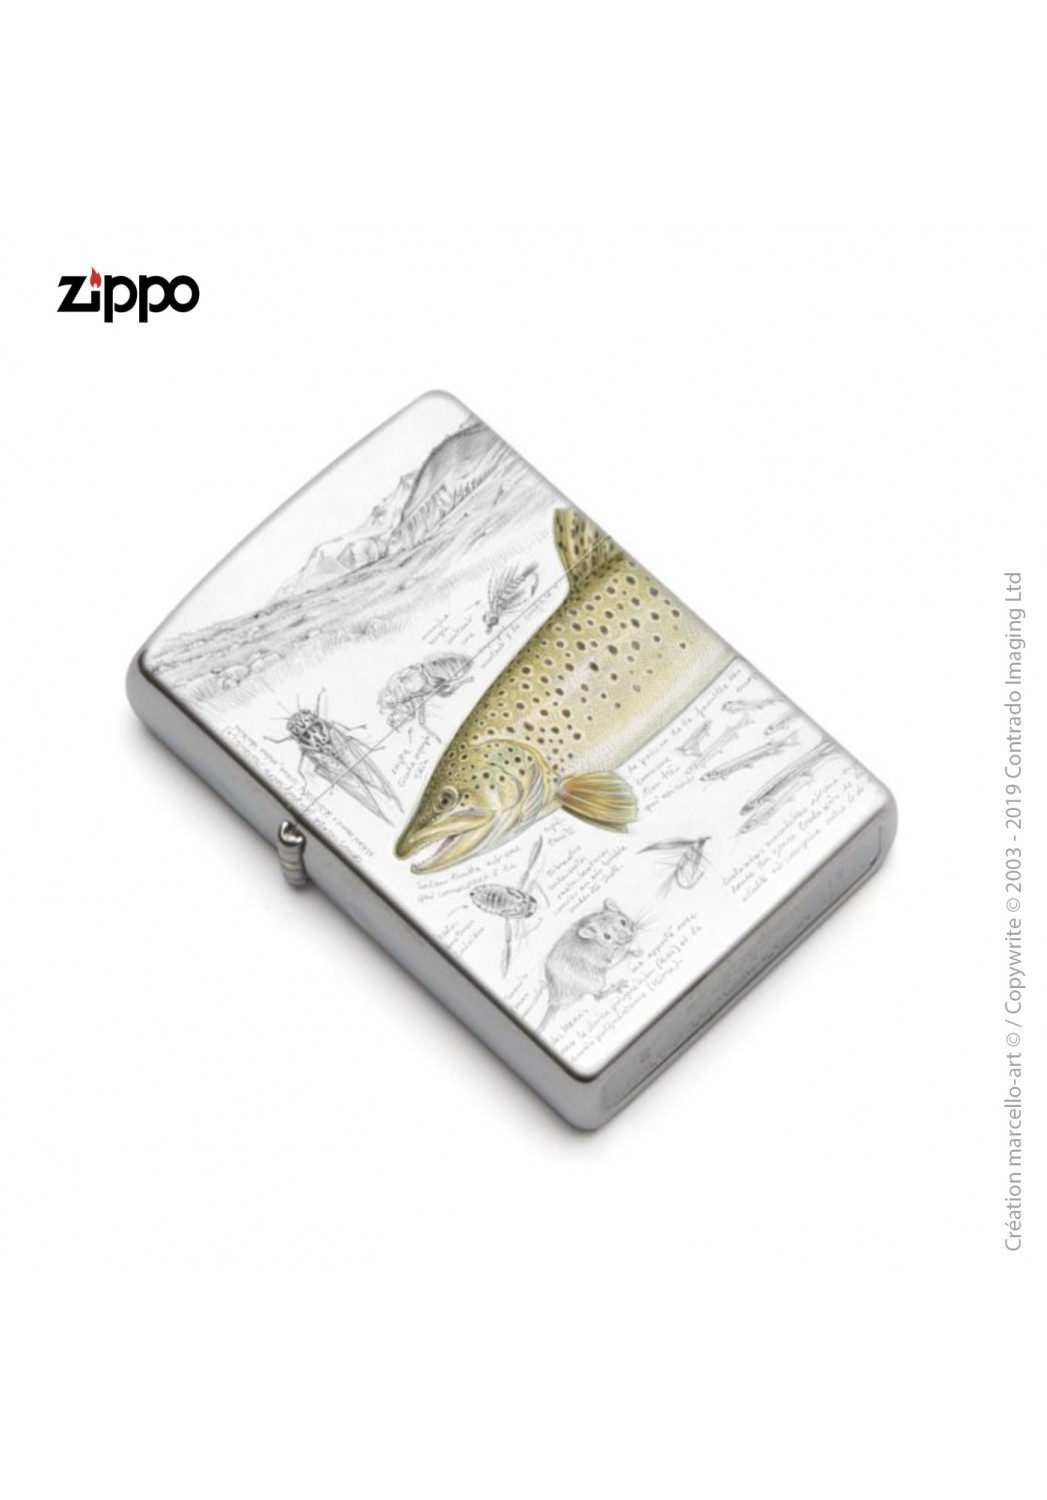 Marcello-art: Decoration accessoiries Zippo 372 brown trout